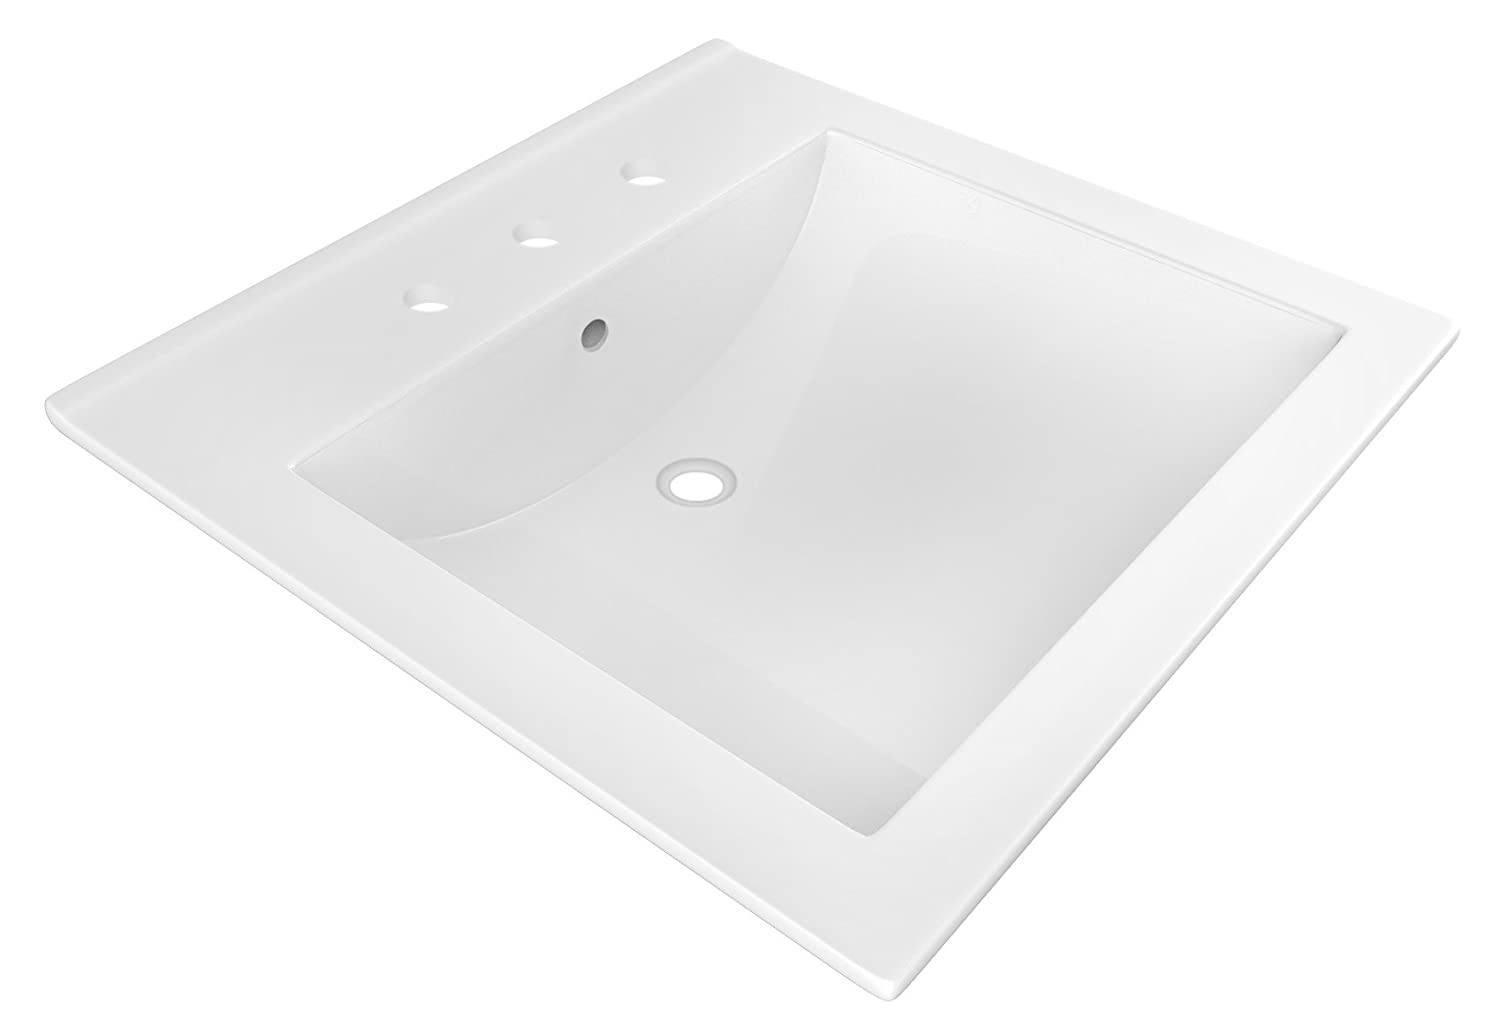 American Imaginations AI-888-18098 21.5-in Faucet D Ceramic Top in White Color for 8-in o.c W x 18.5-in